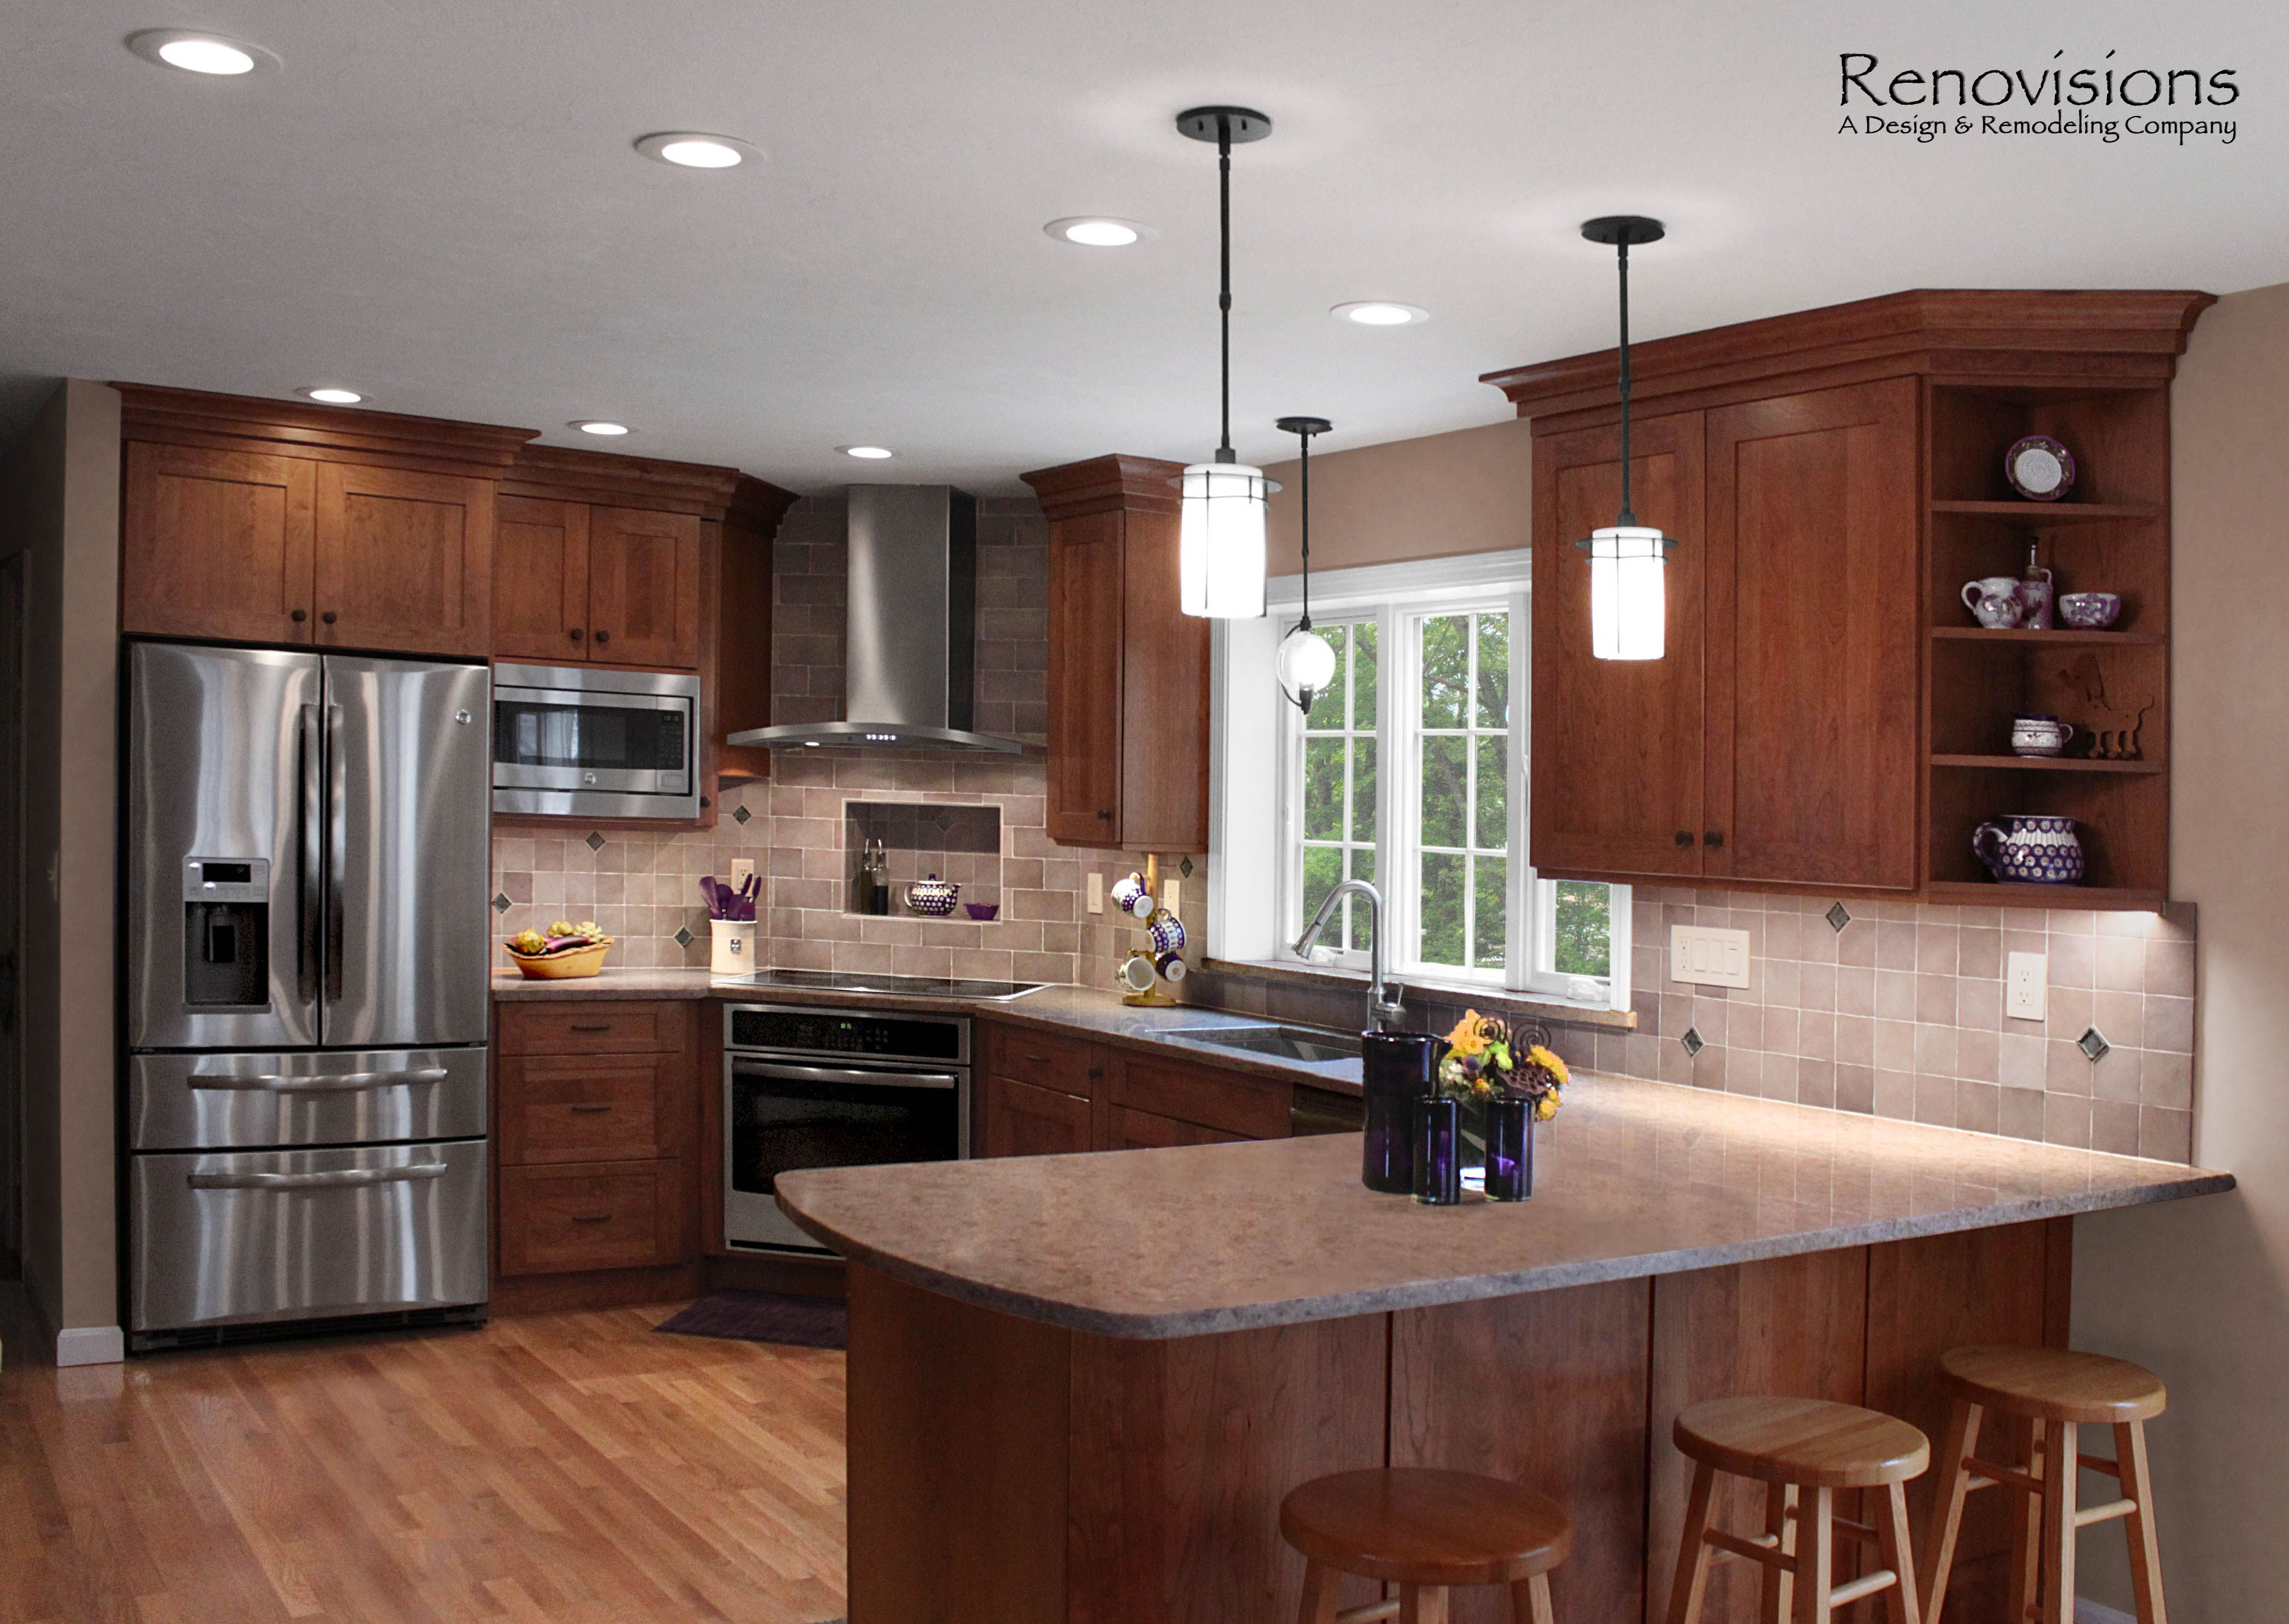 Kitchen remodel by Renovisions. Induction cooktop